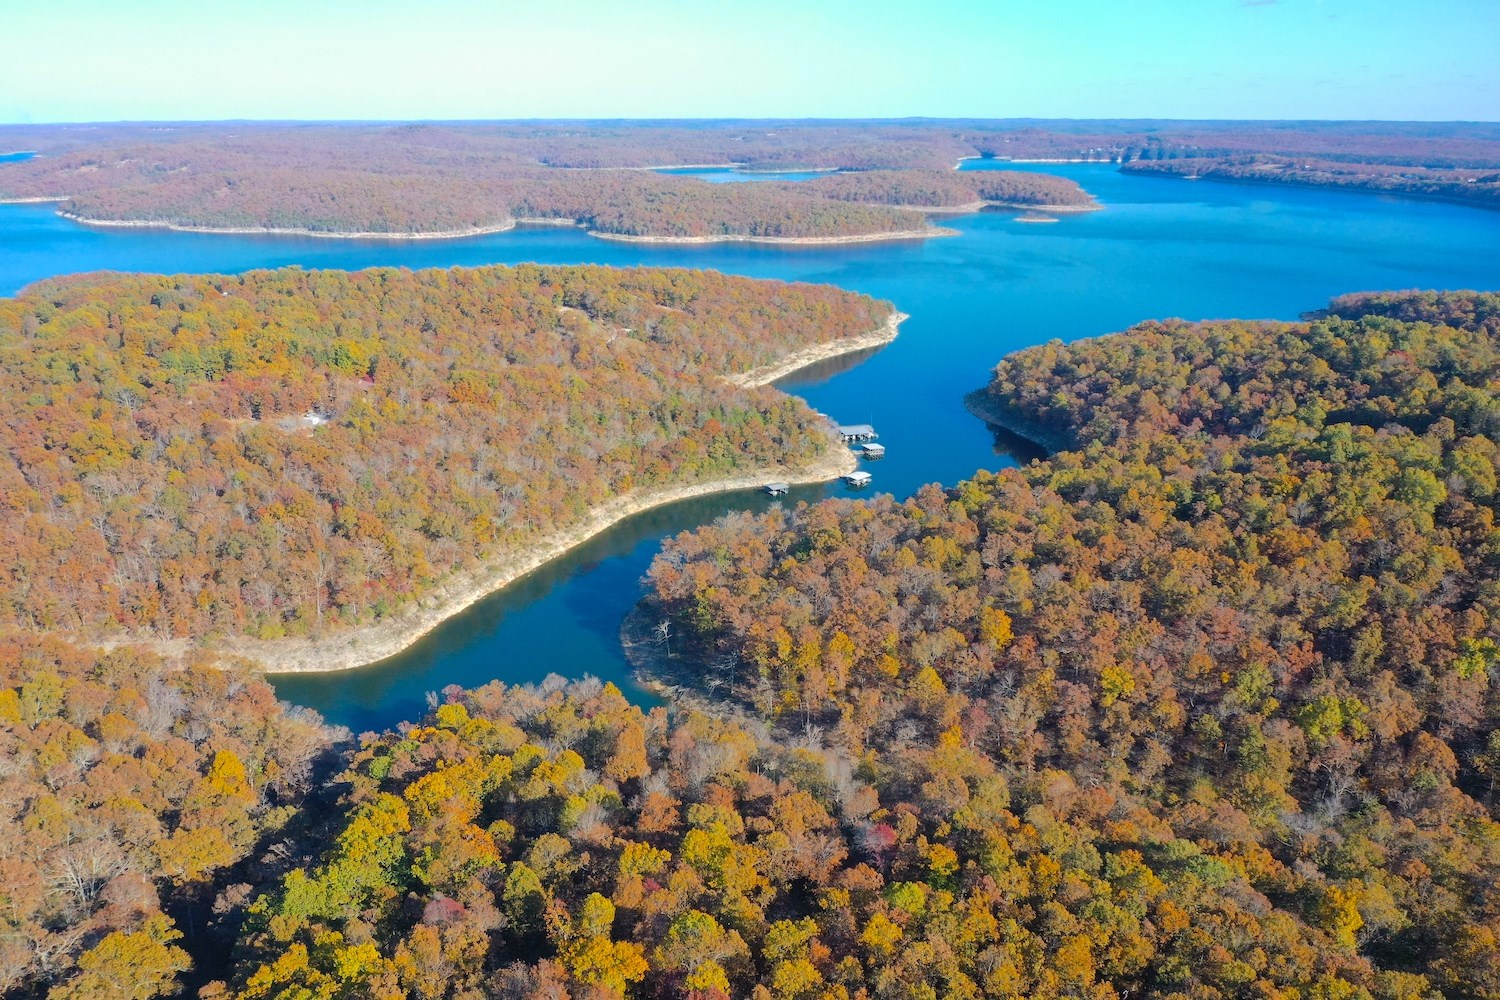 Land for Sale Near Lake Norfork in Mountain Home Arkansas